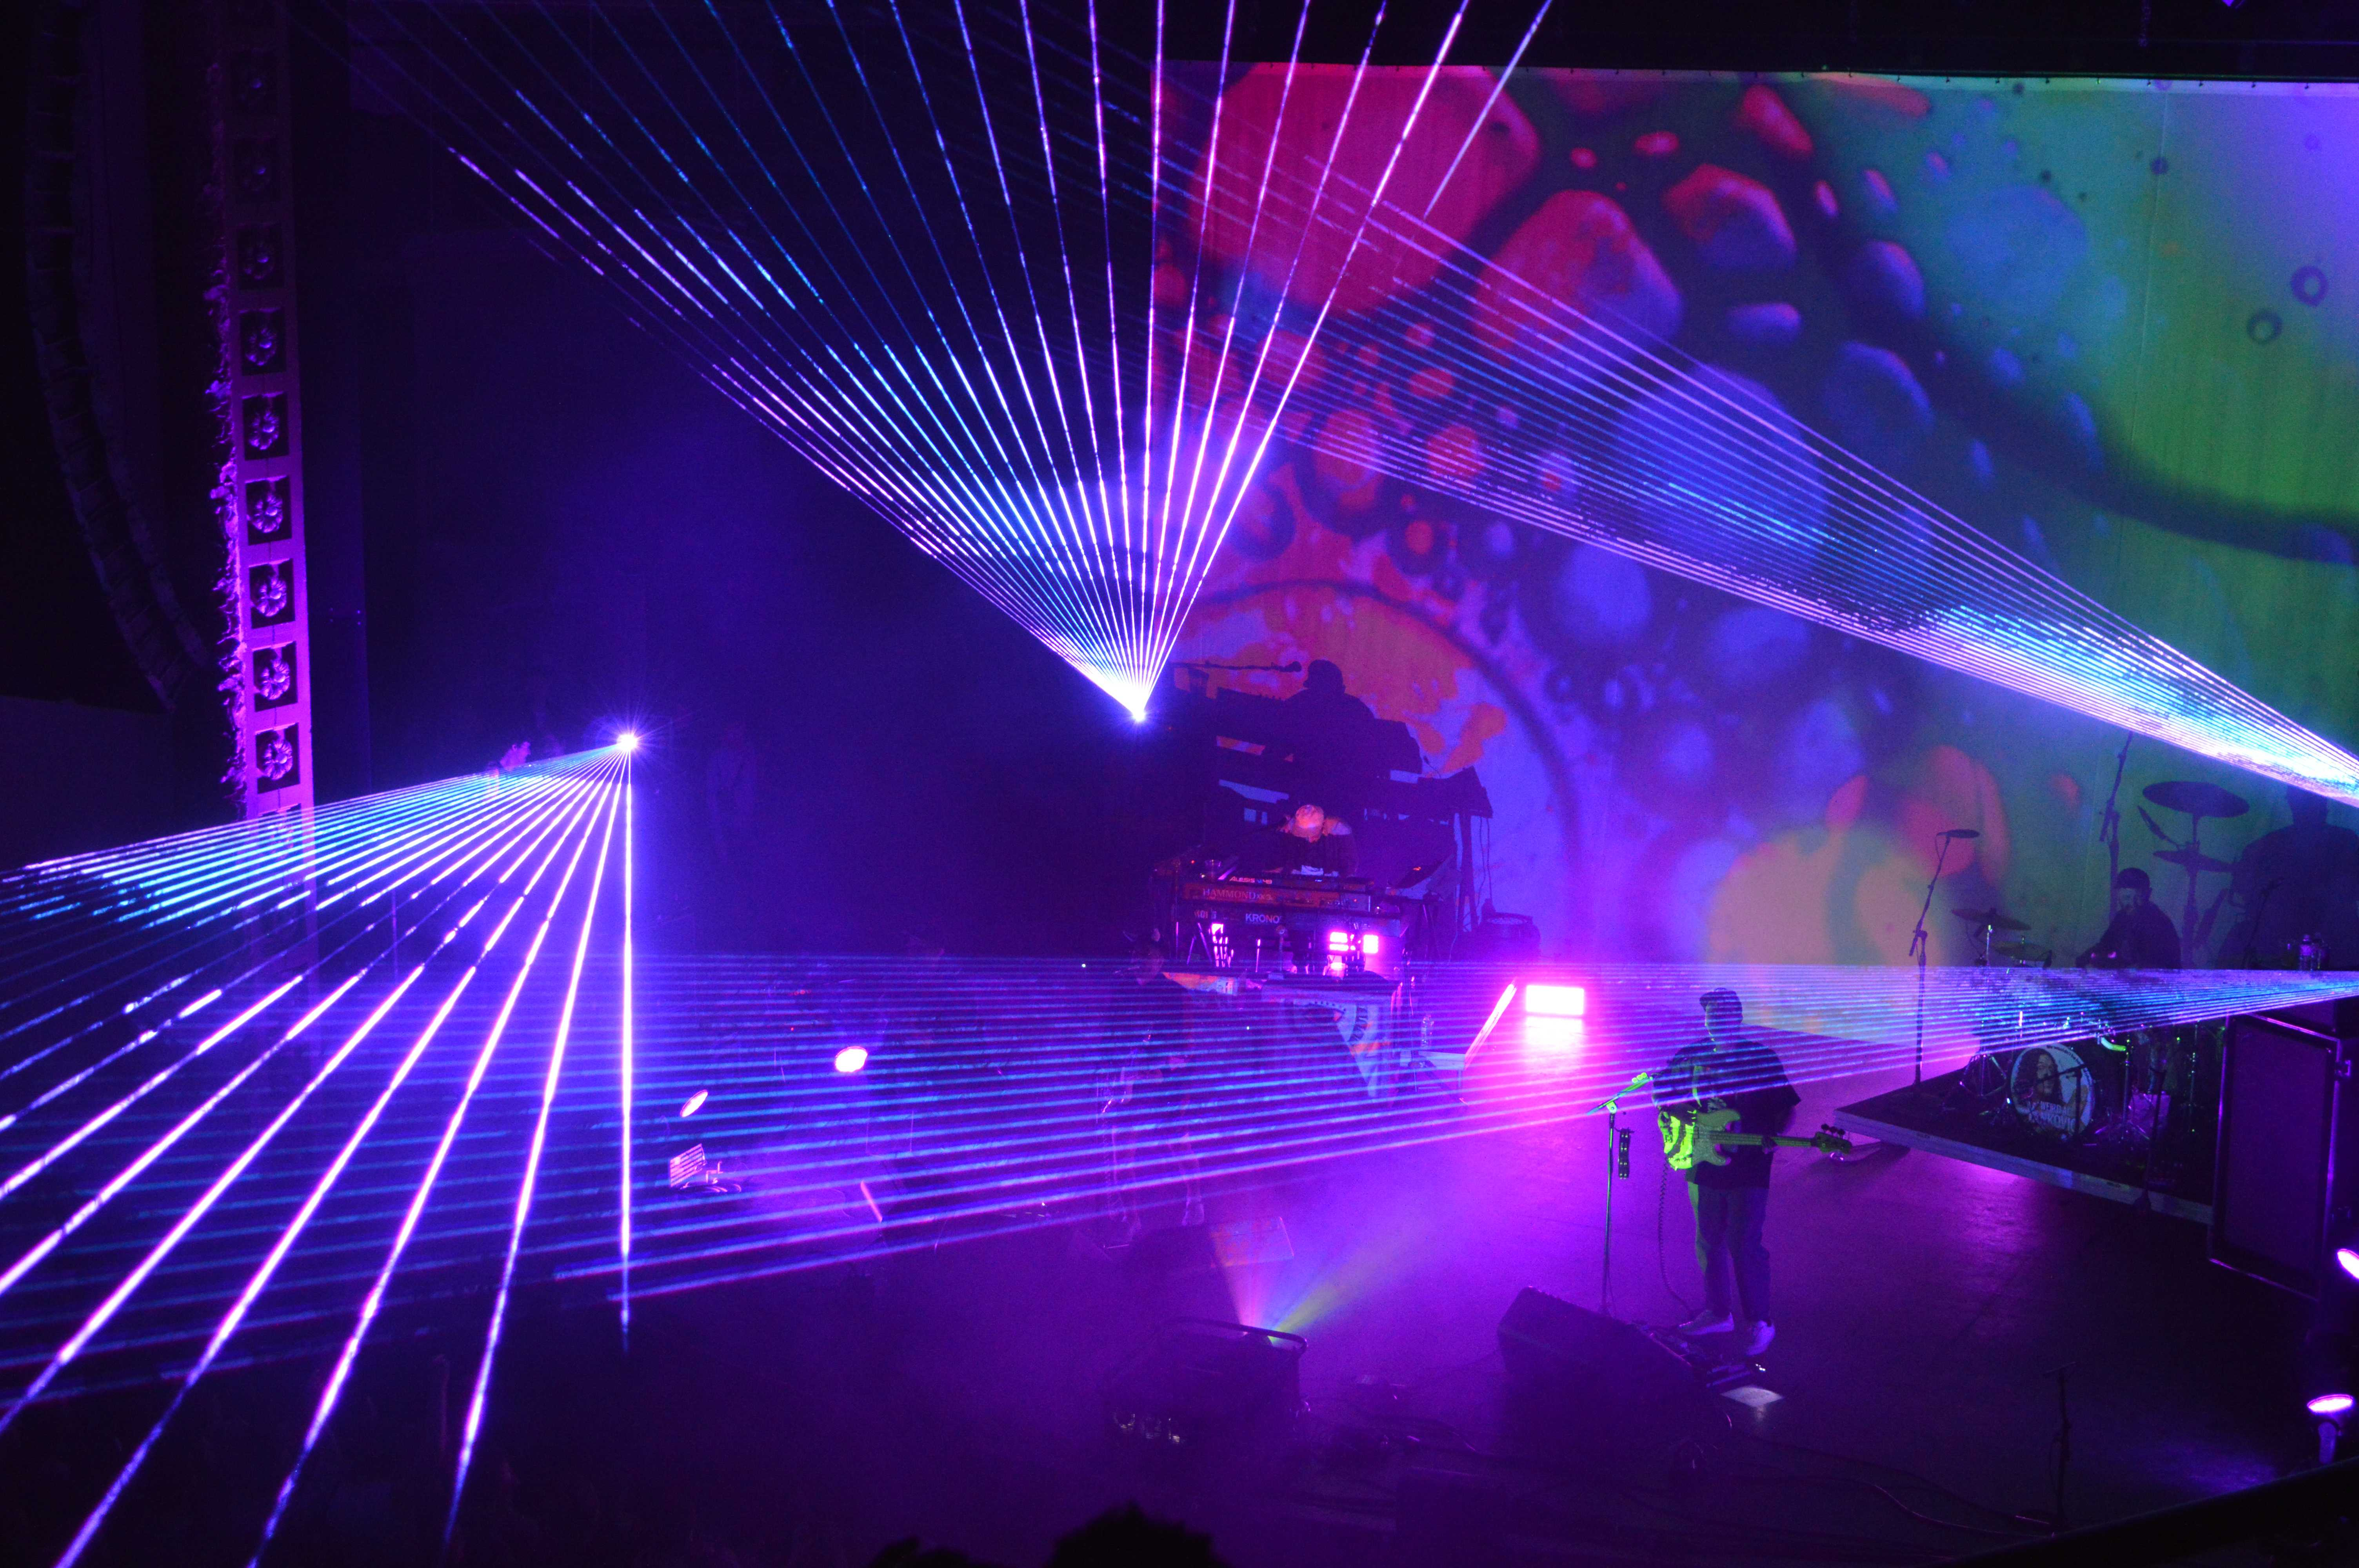 Portugal. The Man plays sold-out show at Palace Theatre